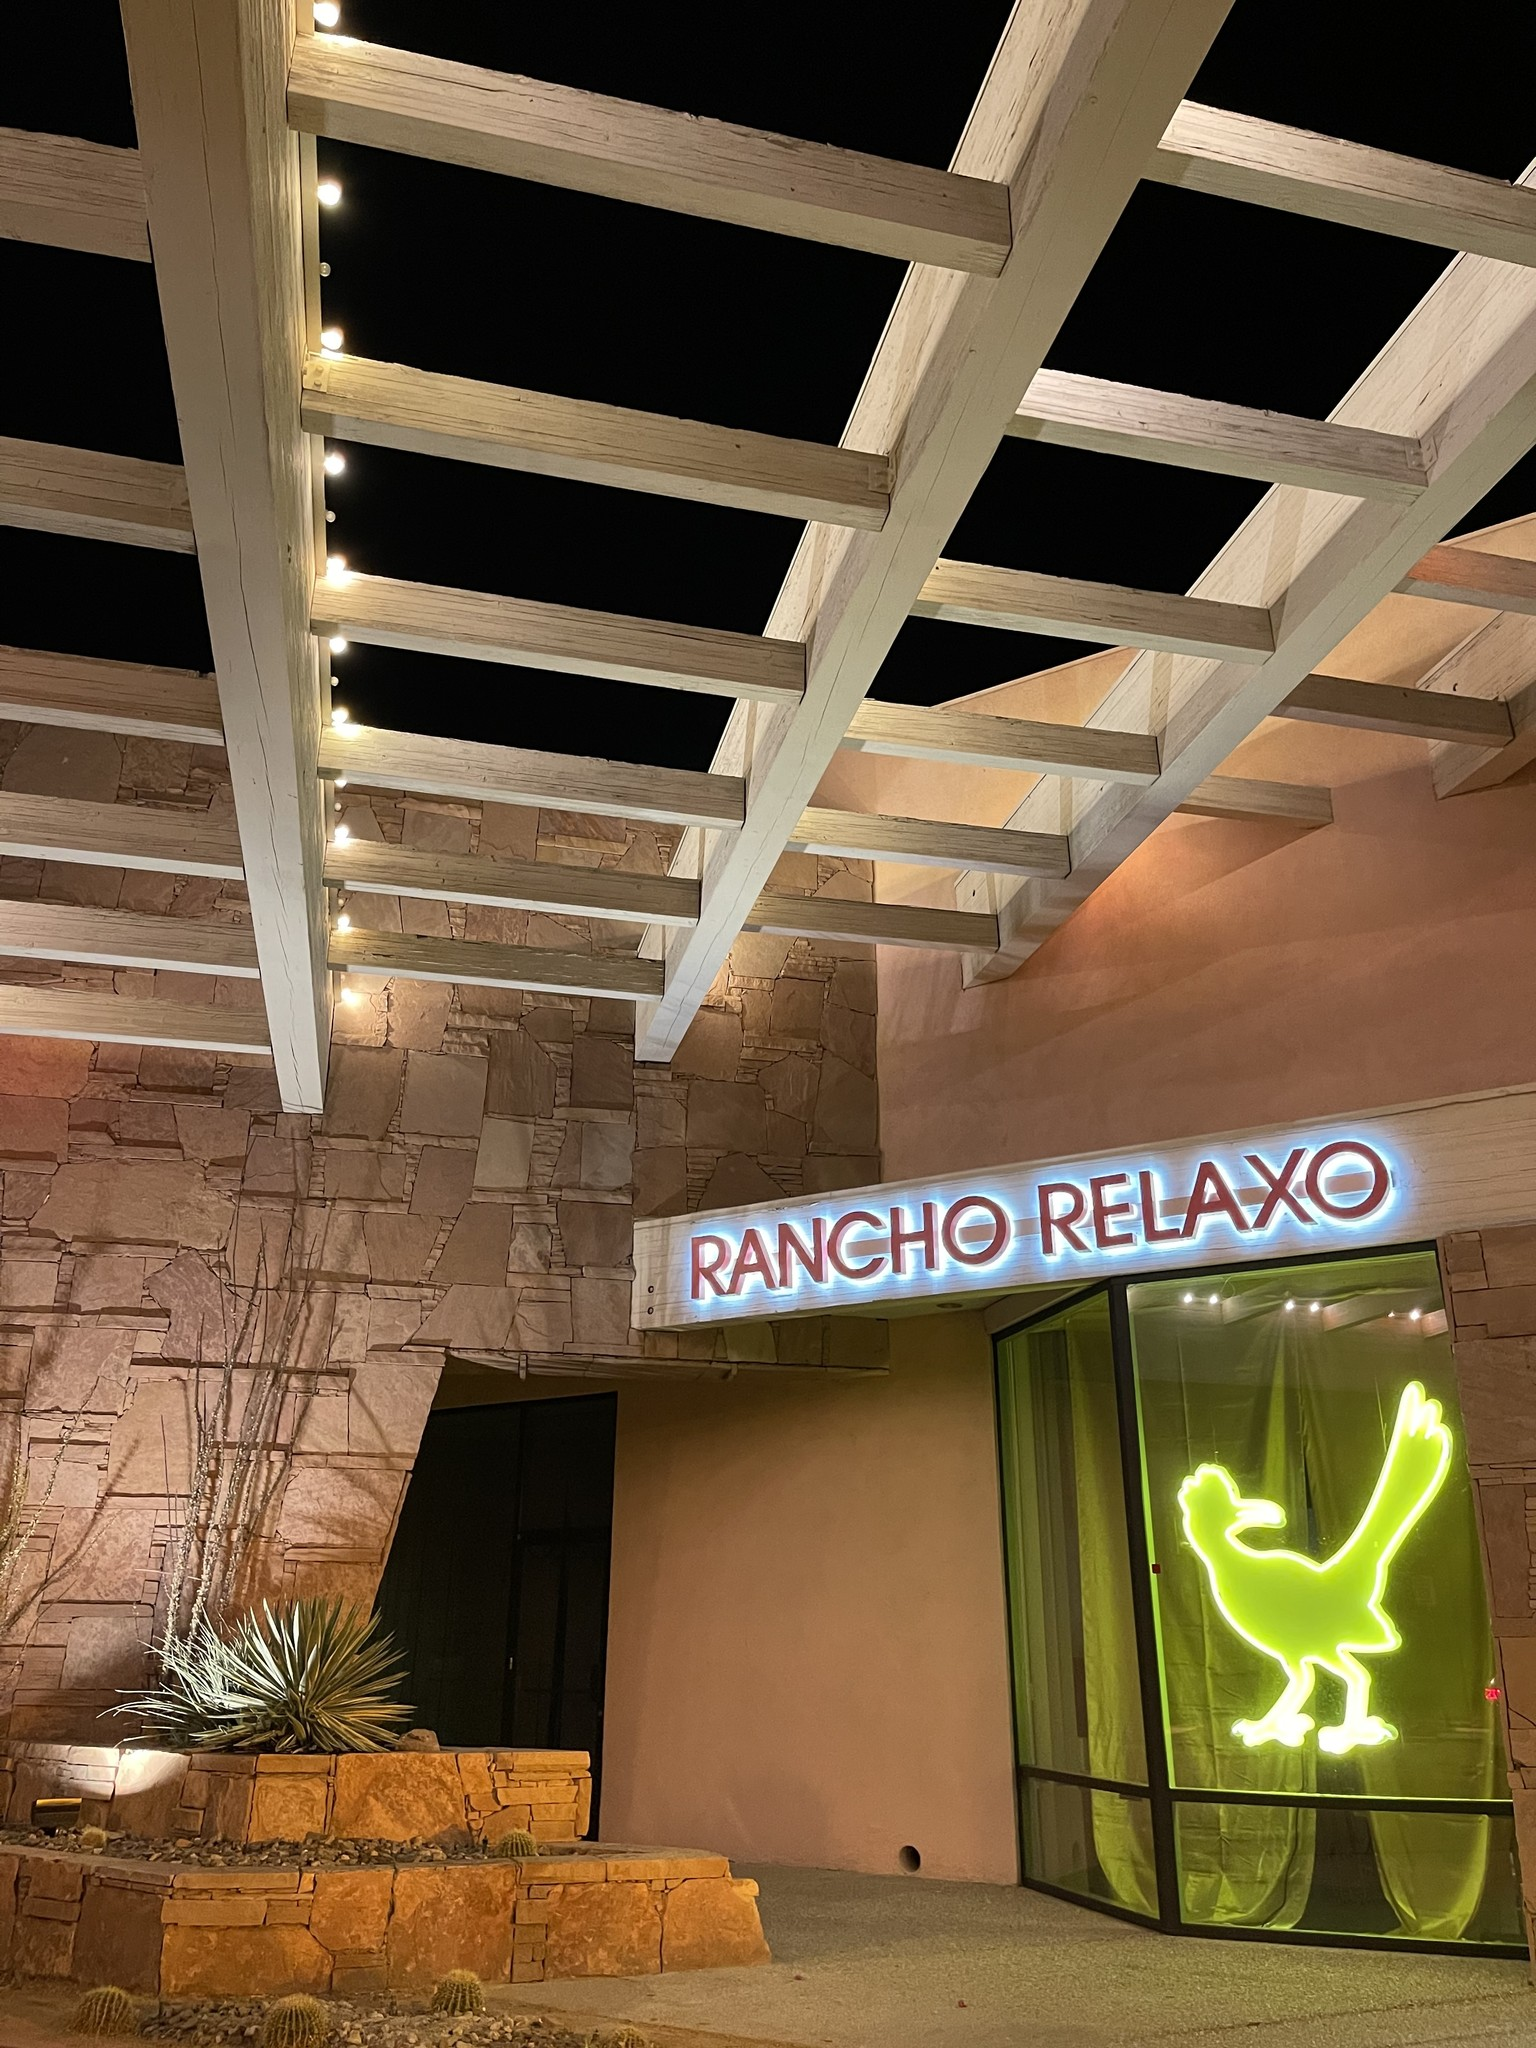 Nights of Neon and the Neon Queen neon road runner for Rancho Relaxo